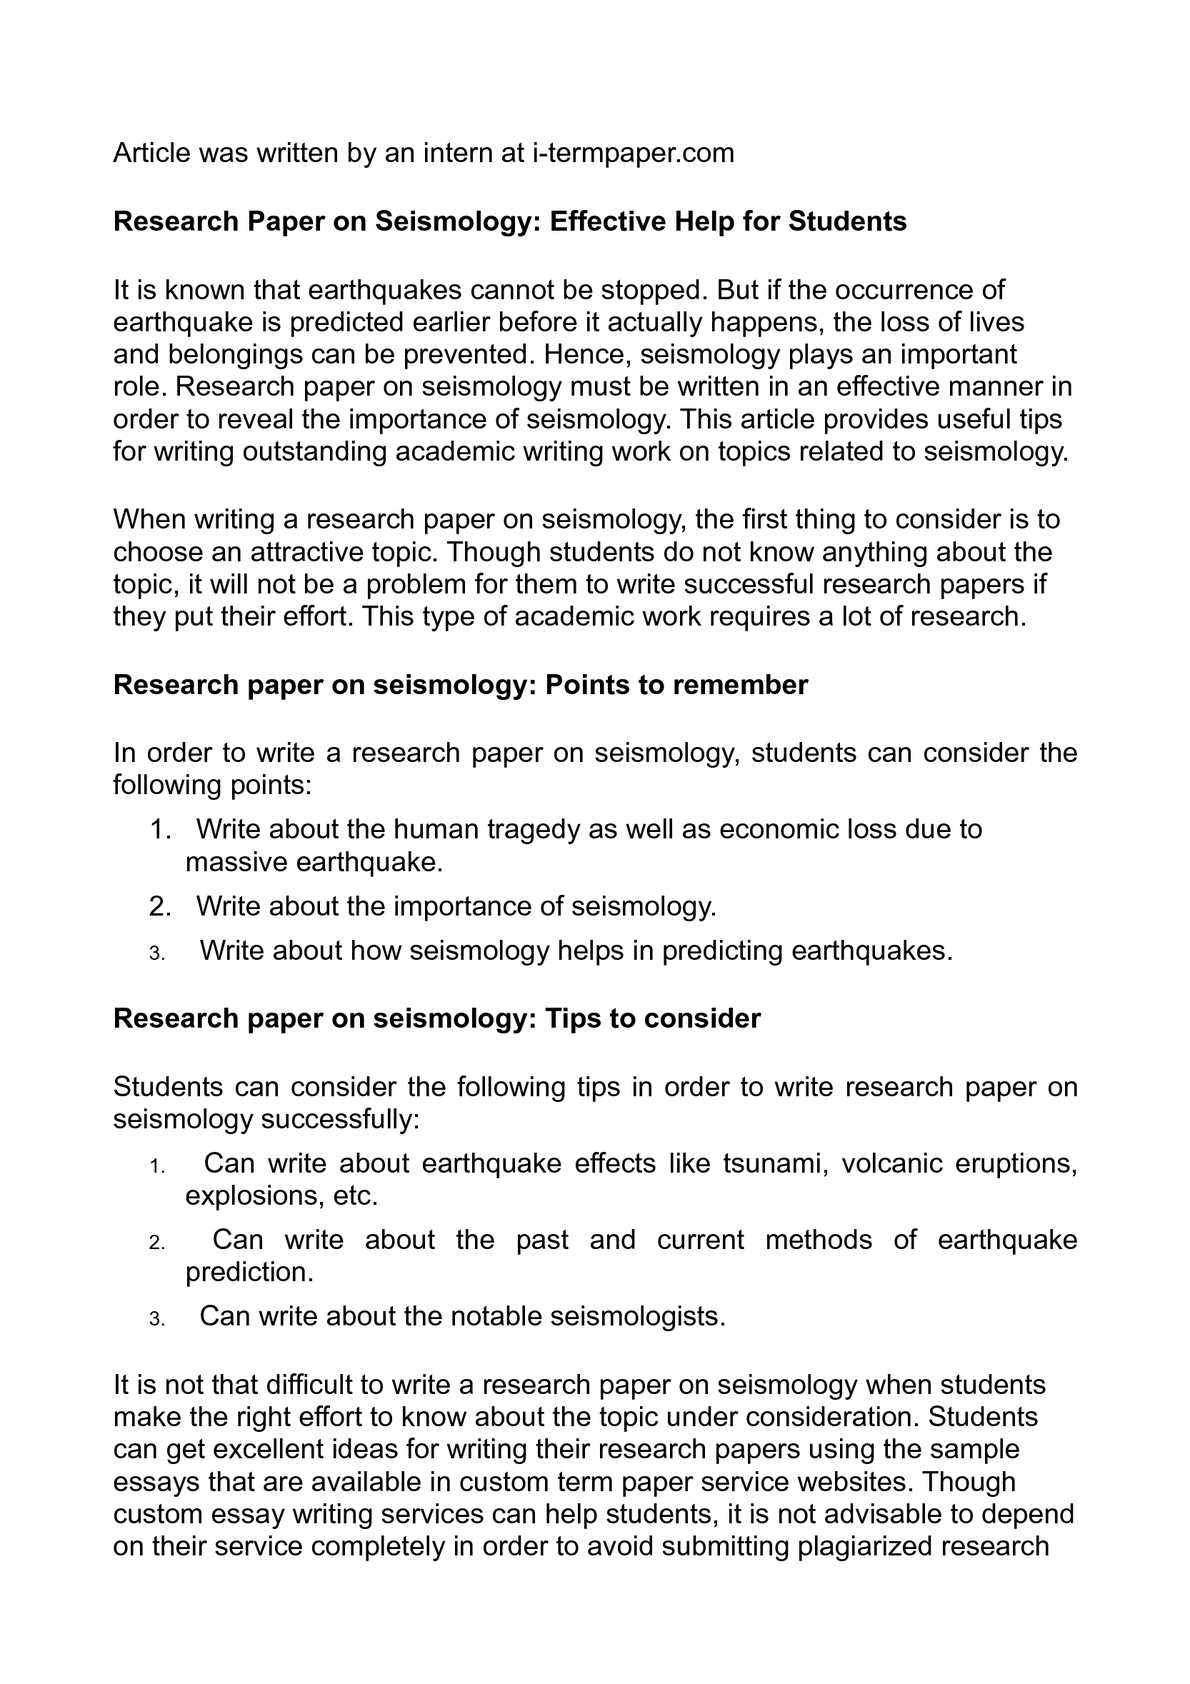 calam atilde copy o research paper on seismology effective help for students